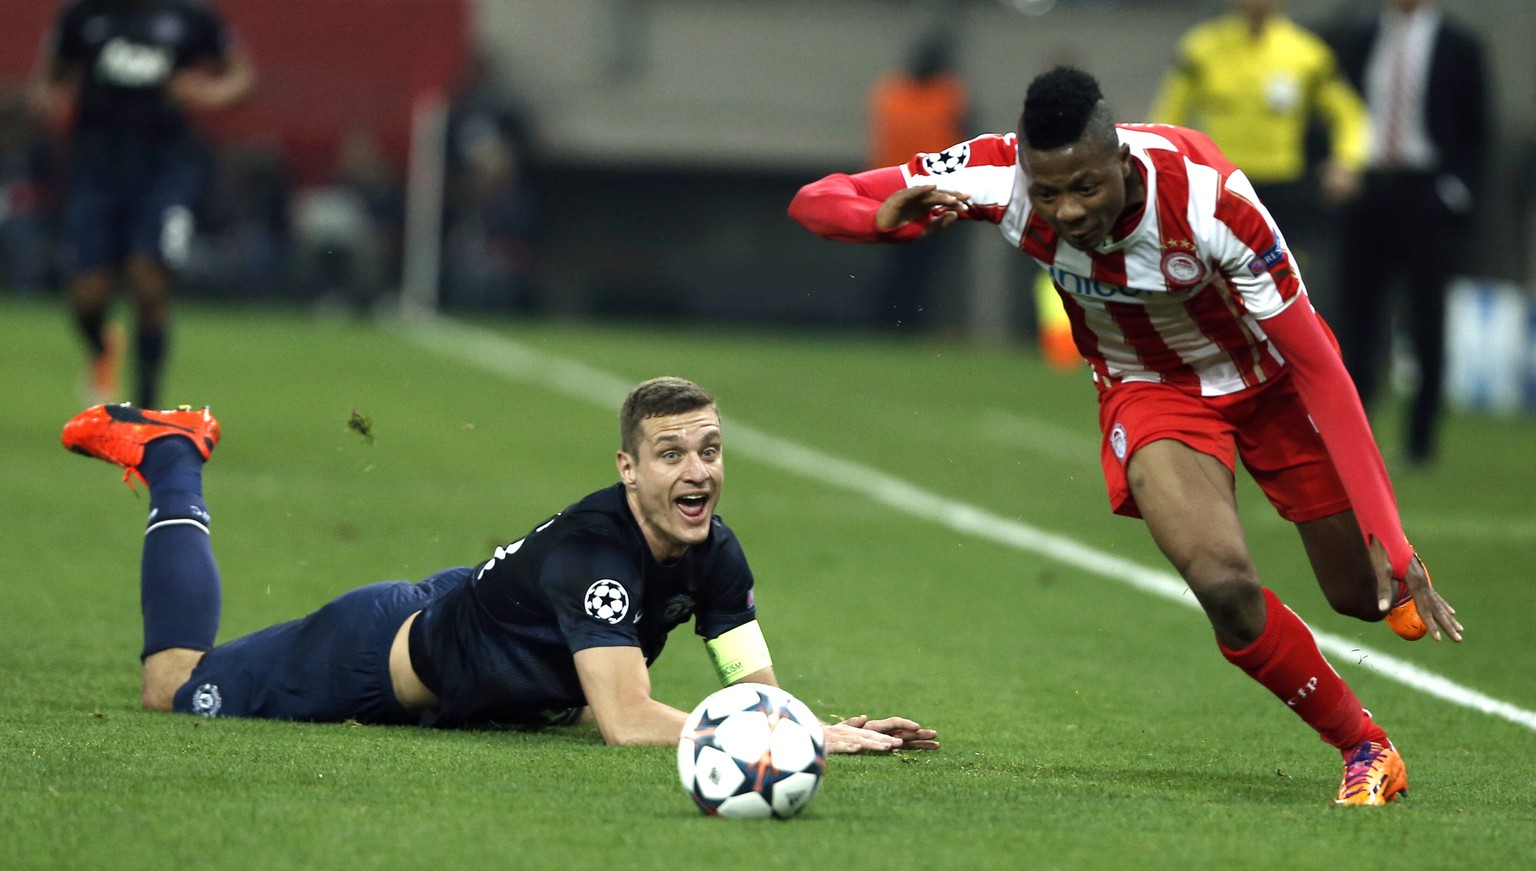 Olympiakos' Michael Olaitan right, goes for the ball as Manchester United's captain Nemanja Vidic looks on  during their Champions League, round of 16, first leg soccer match at Georgios Karaiskakis stadium, in Piraeus port, near Athens, on Tuesday, Feb. 25, 2014. (AP Photo/Petros Giannakouris)